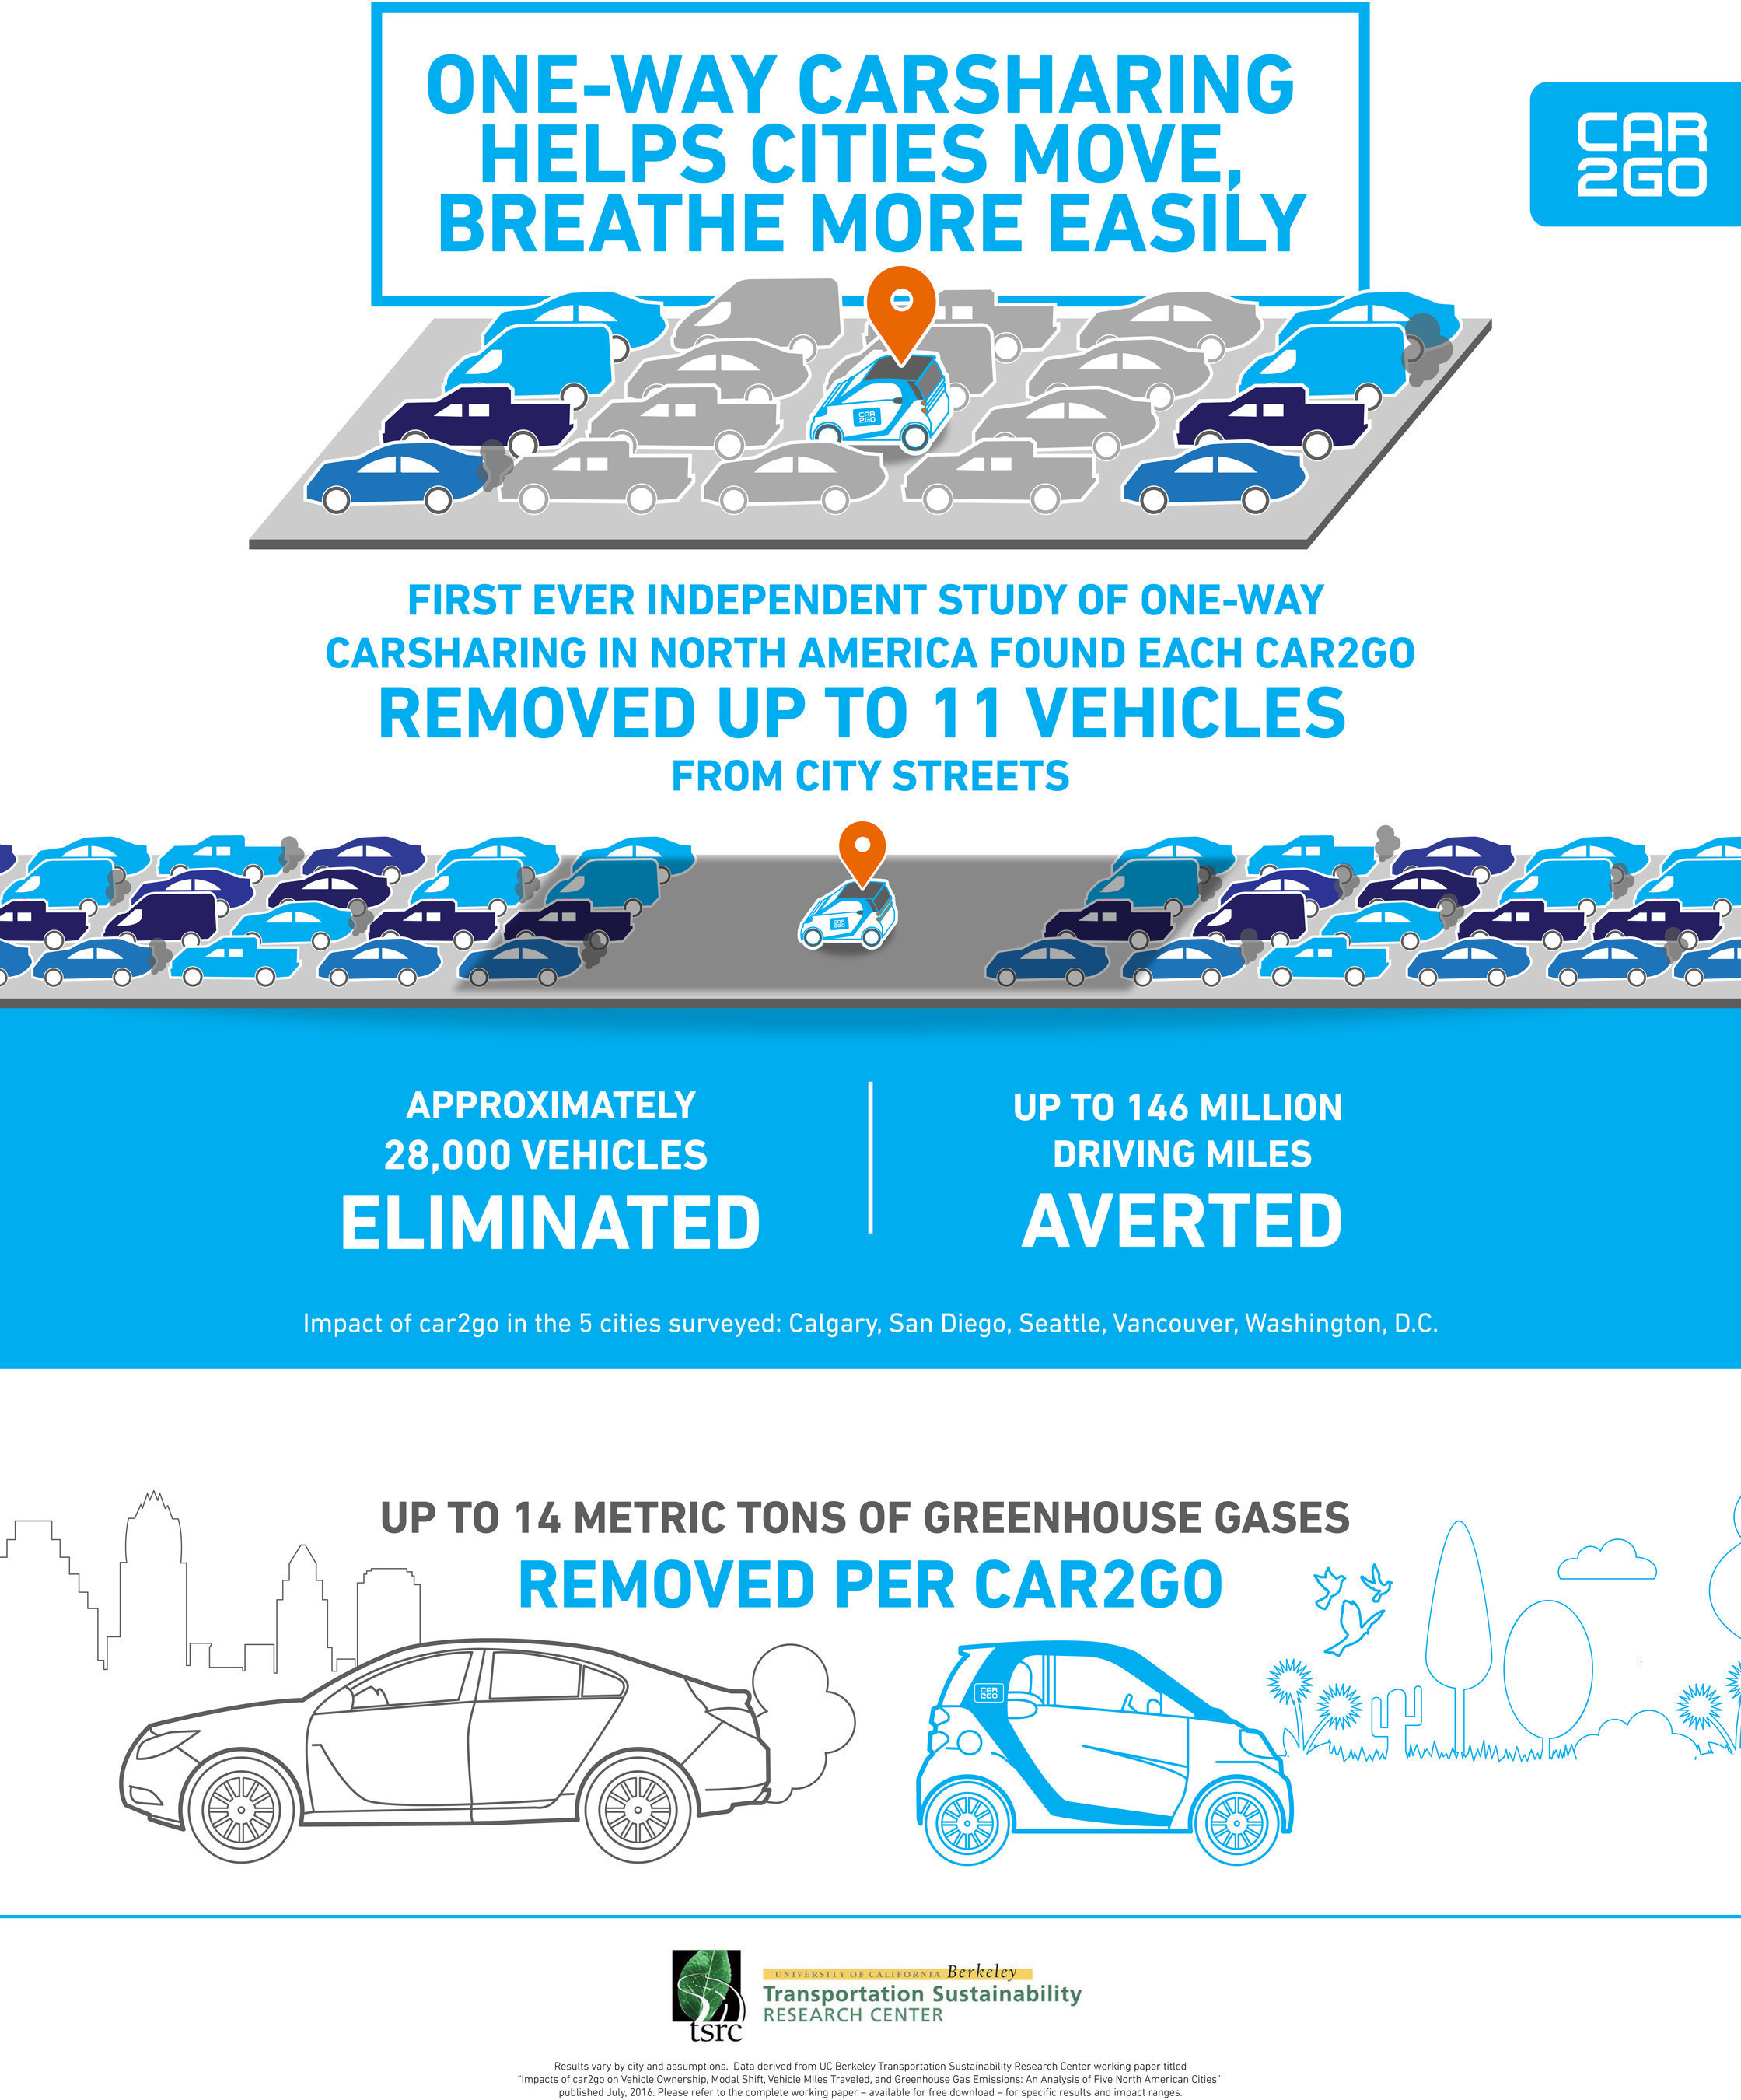 One Way Carsharing Helps Ciites Move Breathe More Easily